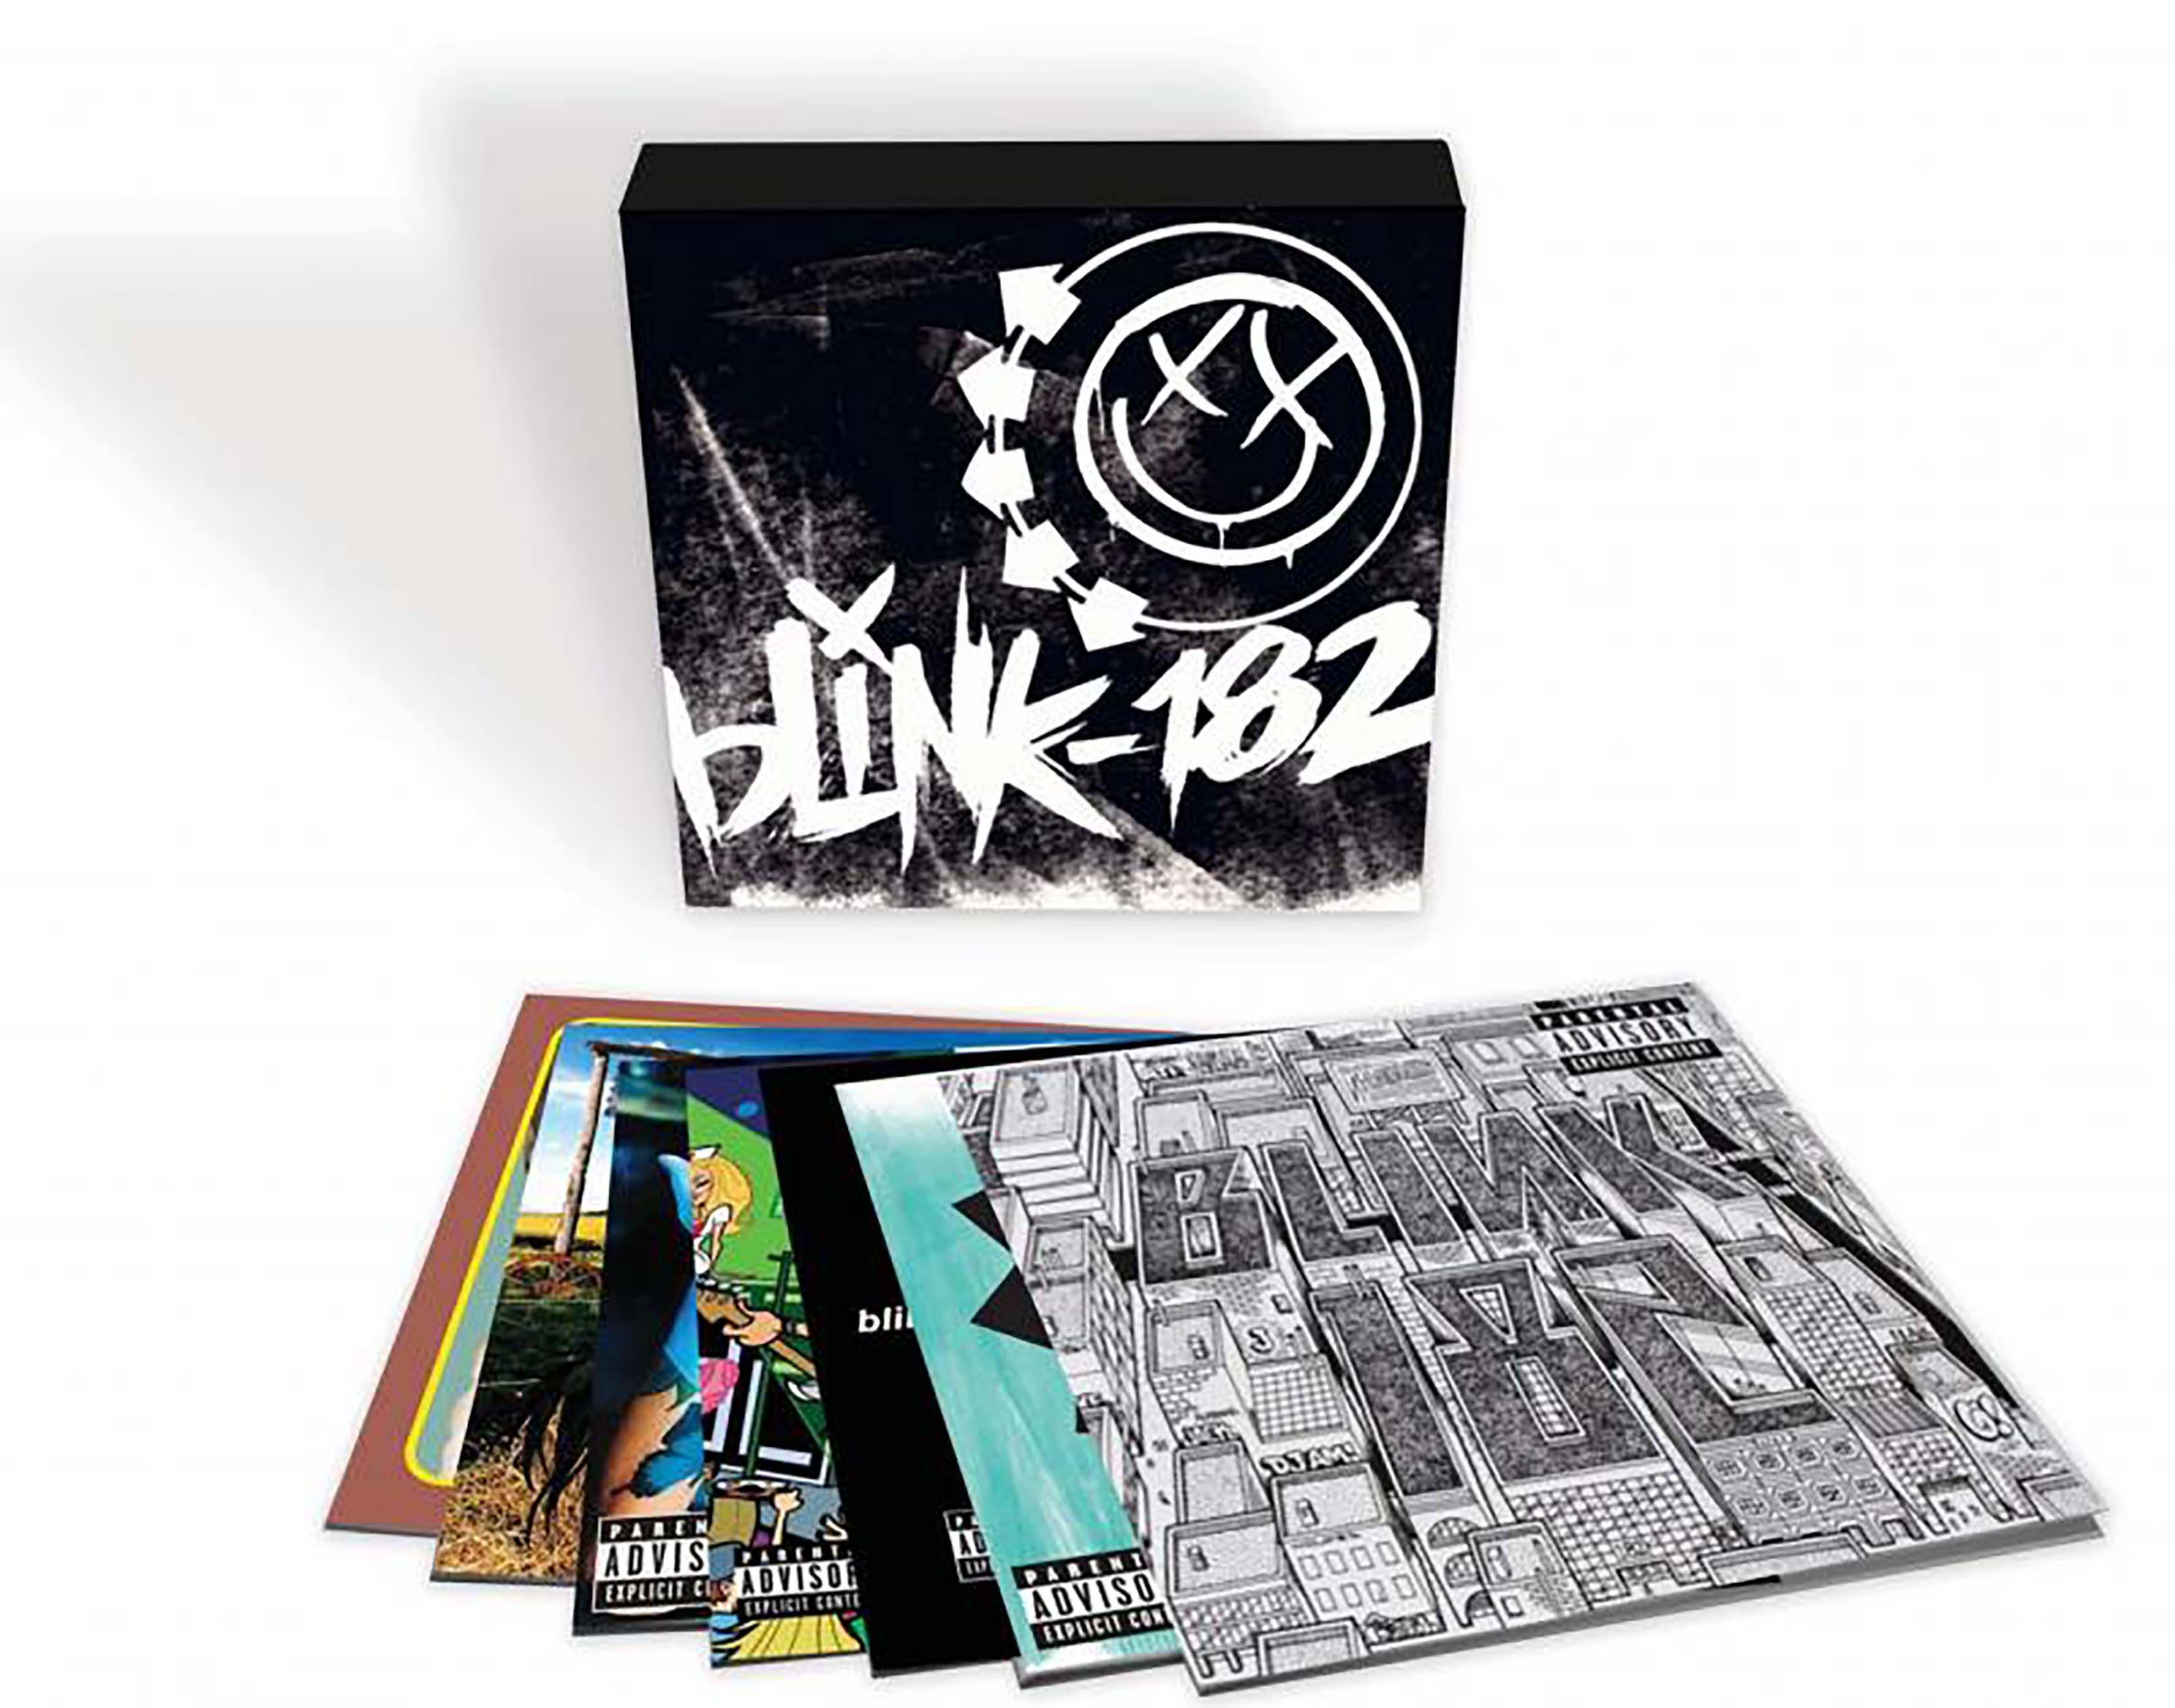 Blink 182 7 Lp Boxed Set 7lp Vinyl Box Containing The First Six Blink 182 Studio Albums As Well As The Live Album The Mark Tom And T Blink 182 Boxset Lp Box